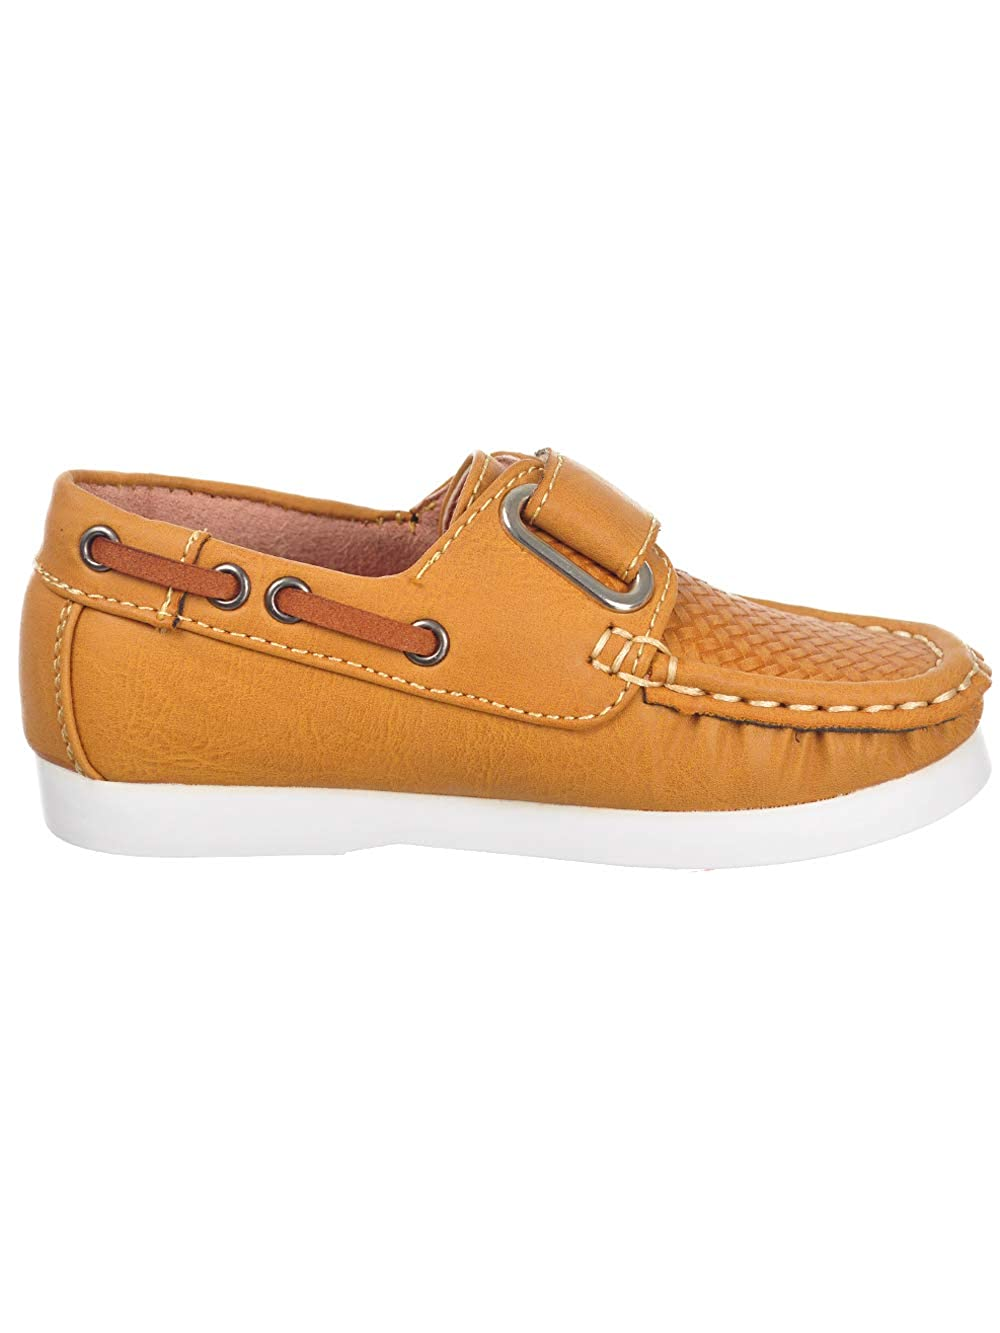 Easy Strider Boys Driving Shoes